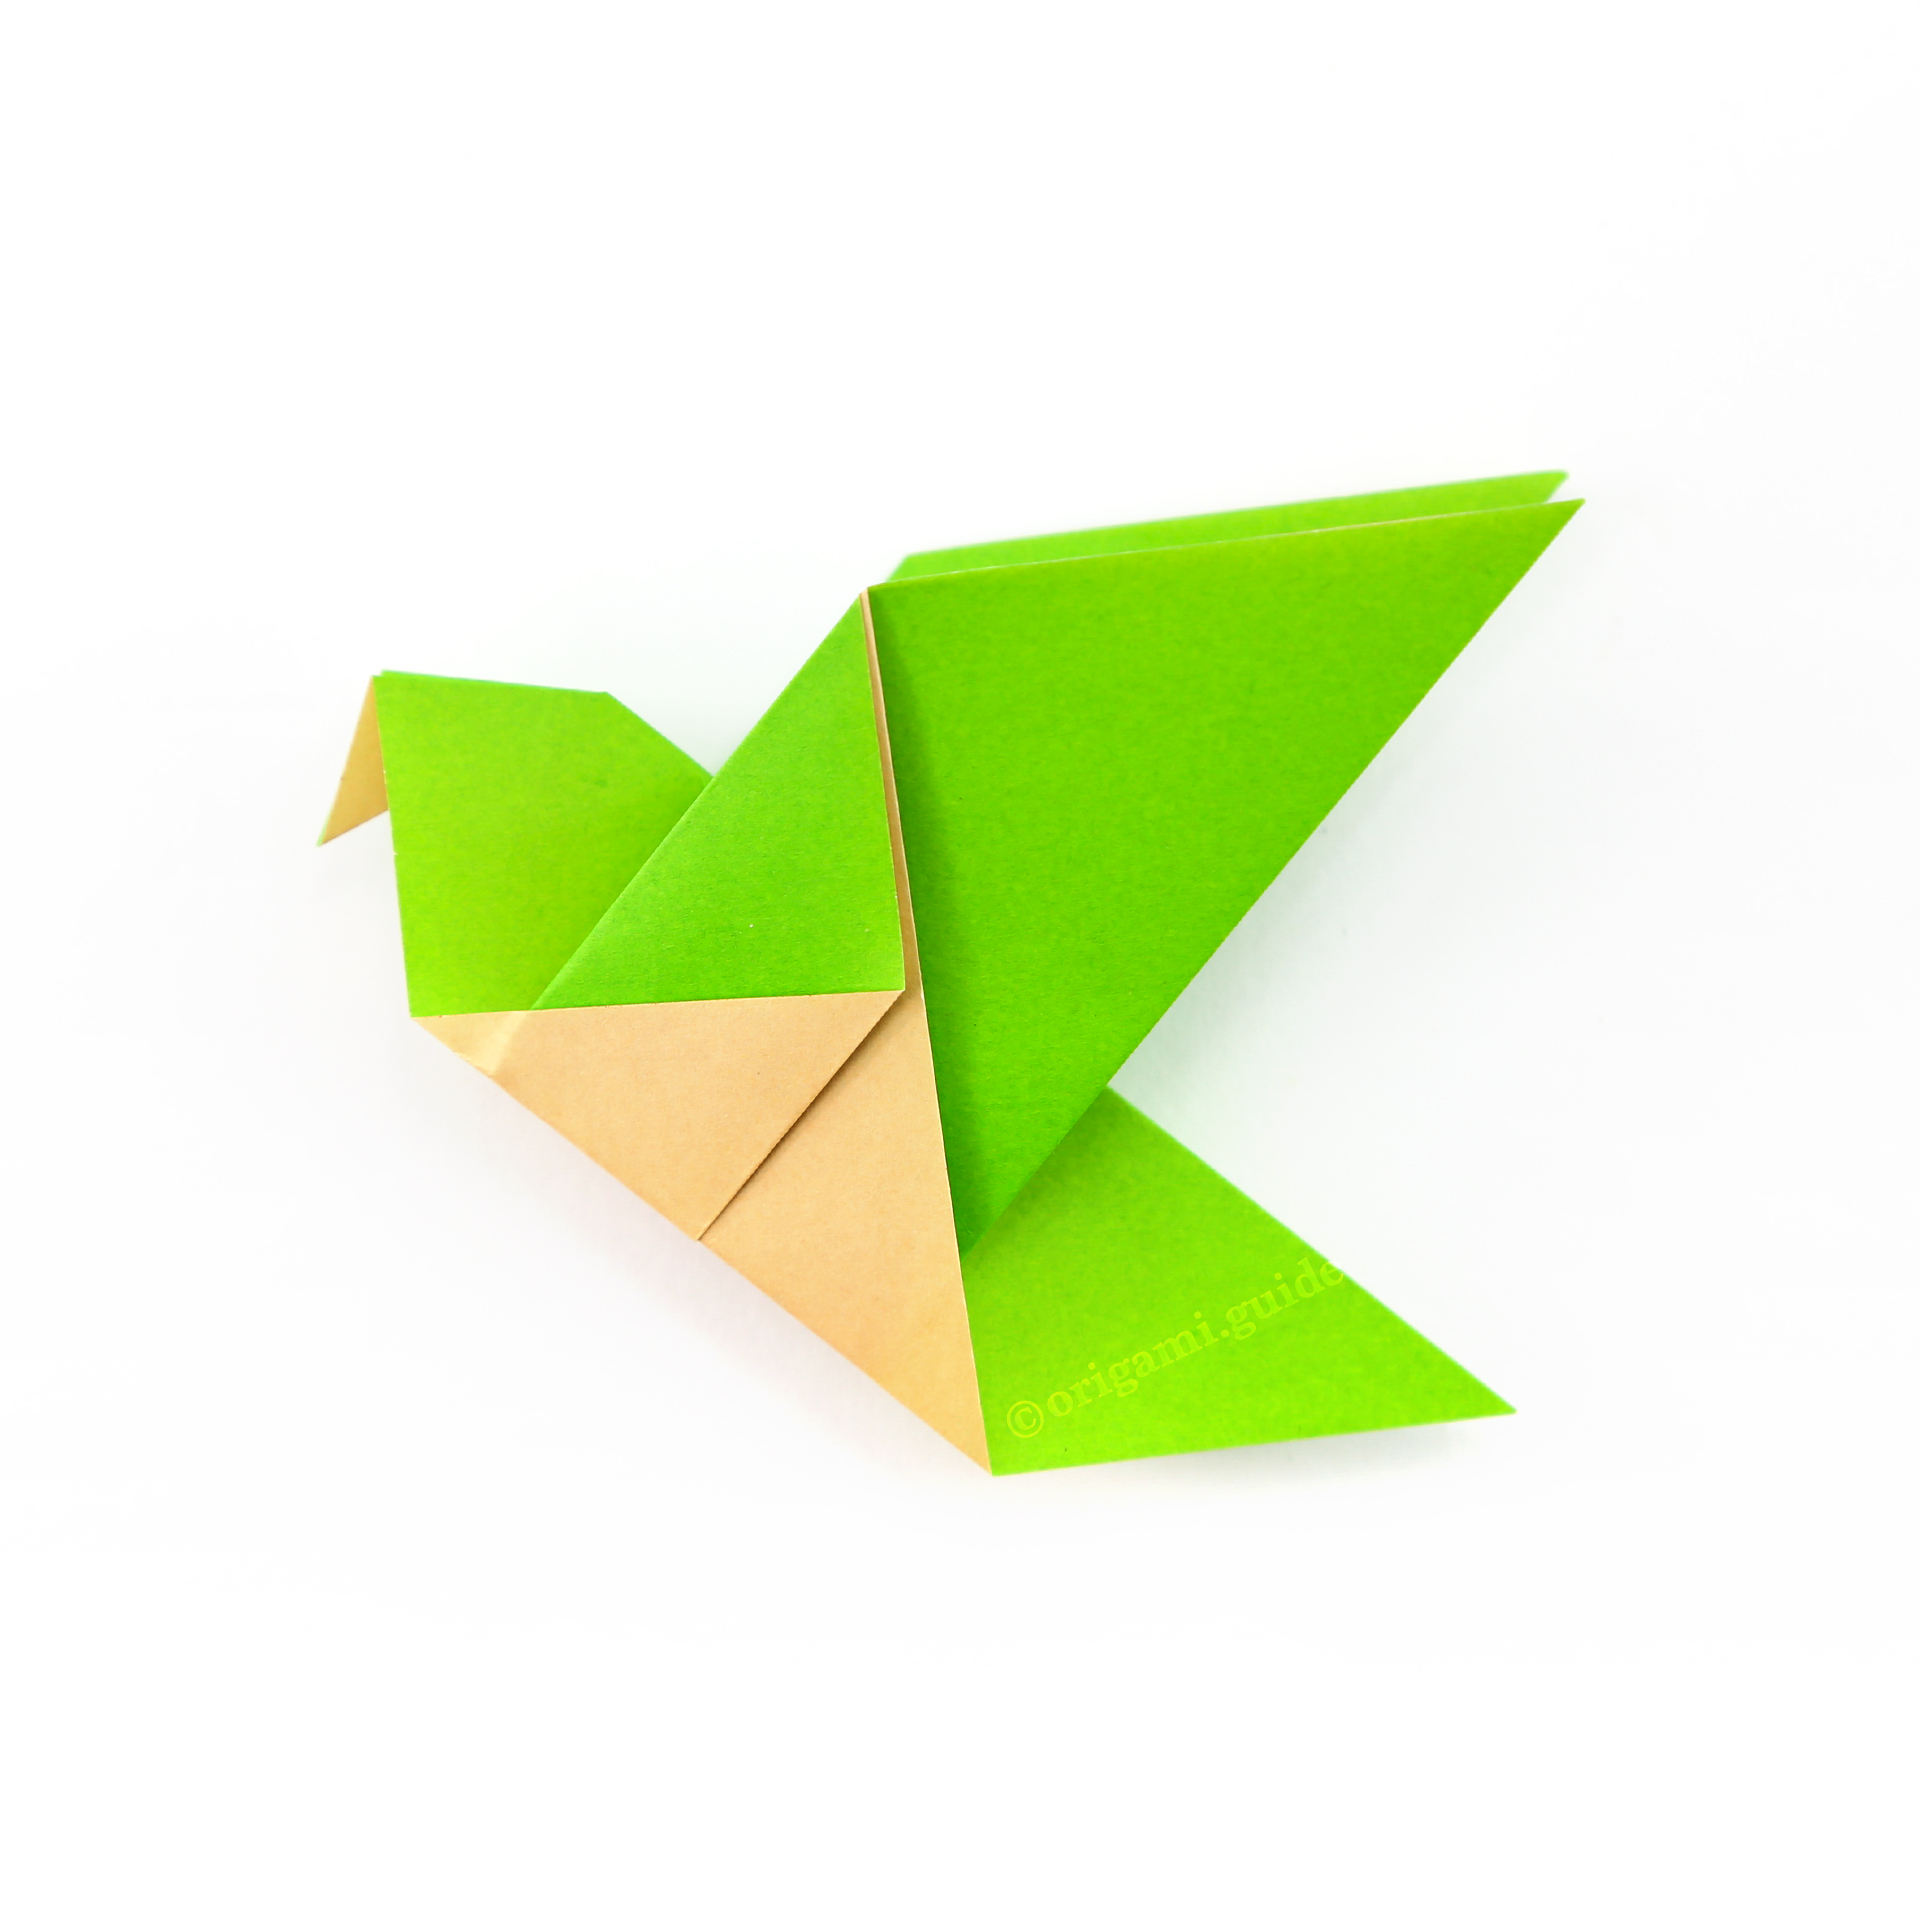 Beginners Origami Diagrams | Origami instructions for kids, Easy ... | 1920x1920